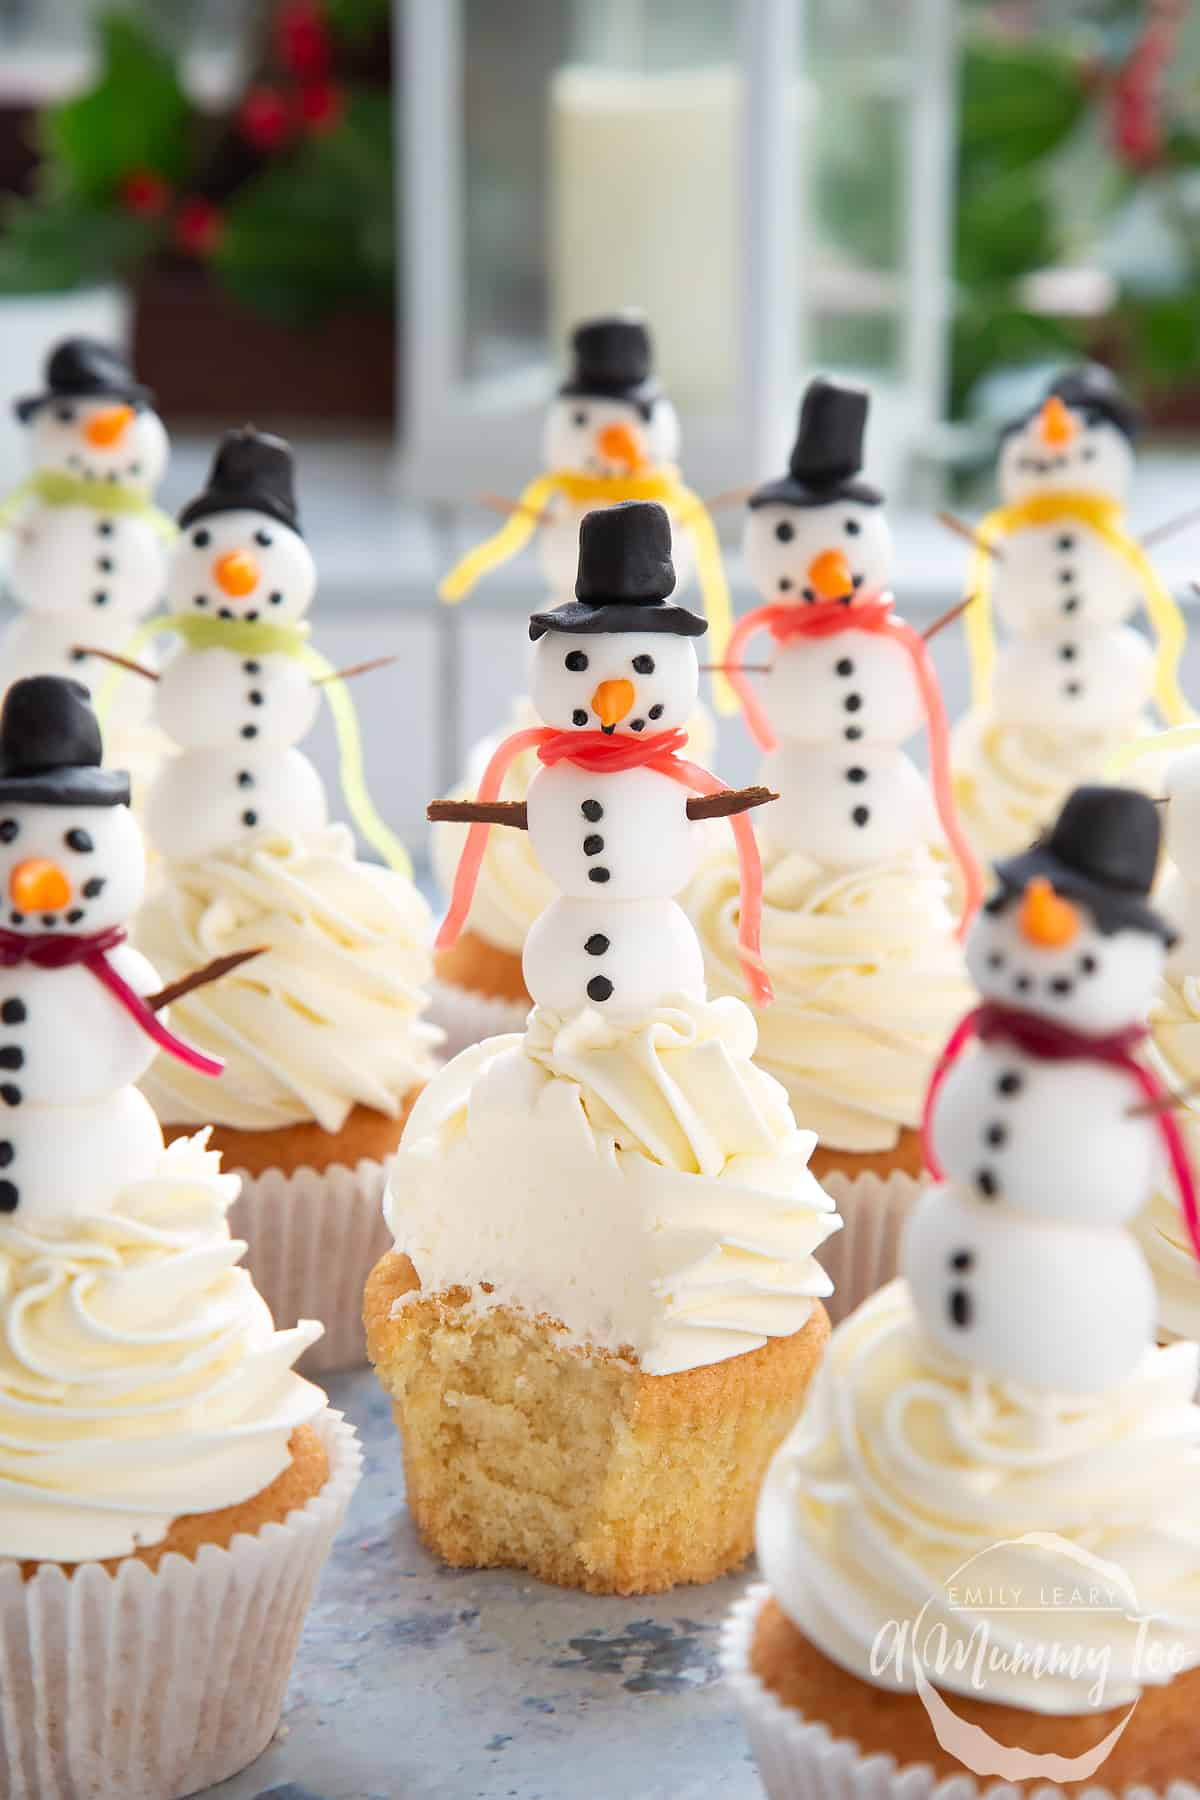 Multiple snowman cupcakes on a table with a festive background. The centered snowman cupcake has been unwrapped and a bite taken out.